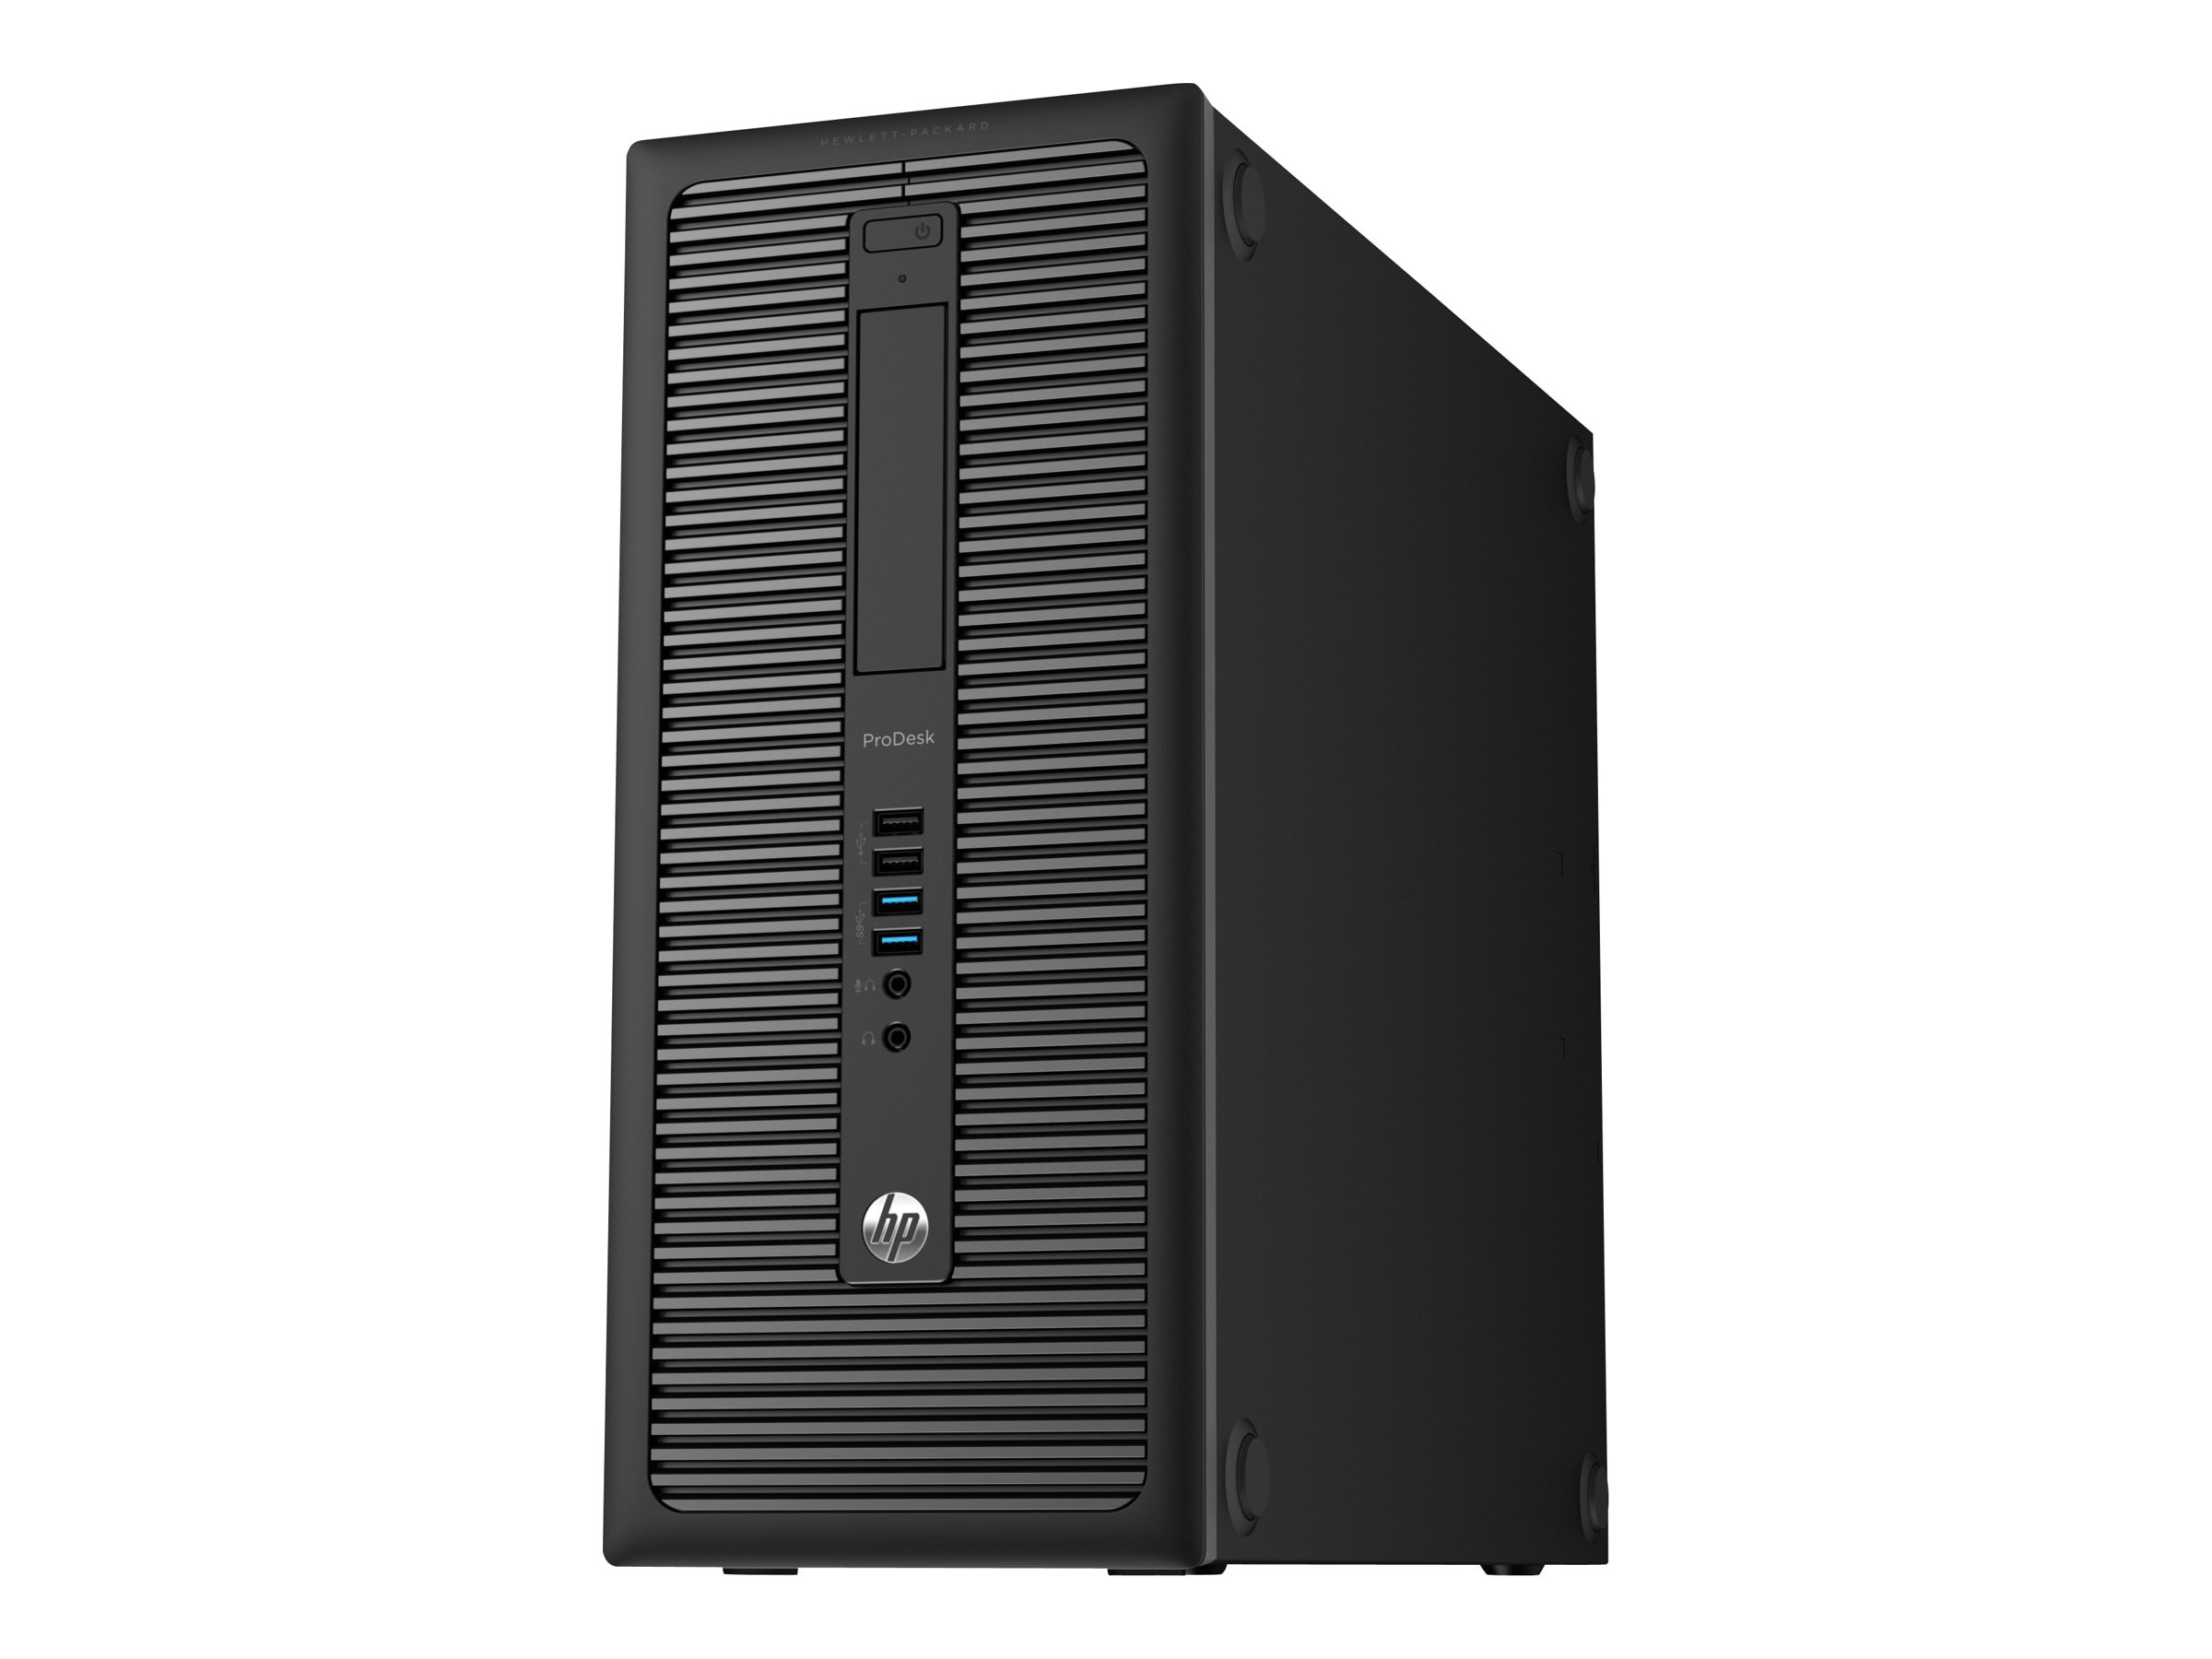 HP ProDesk 600 SFF Core i5-4590 8GB 180GB